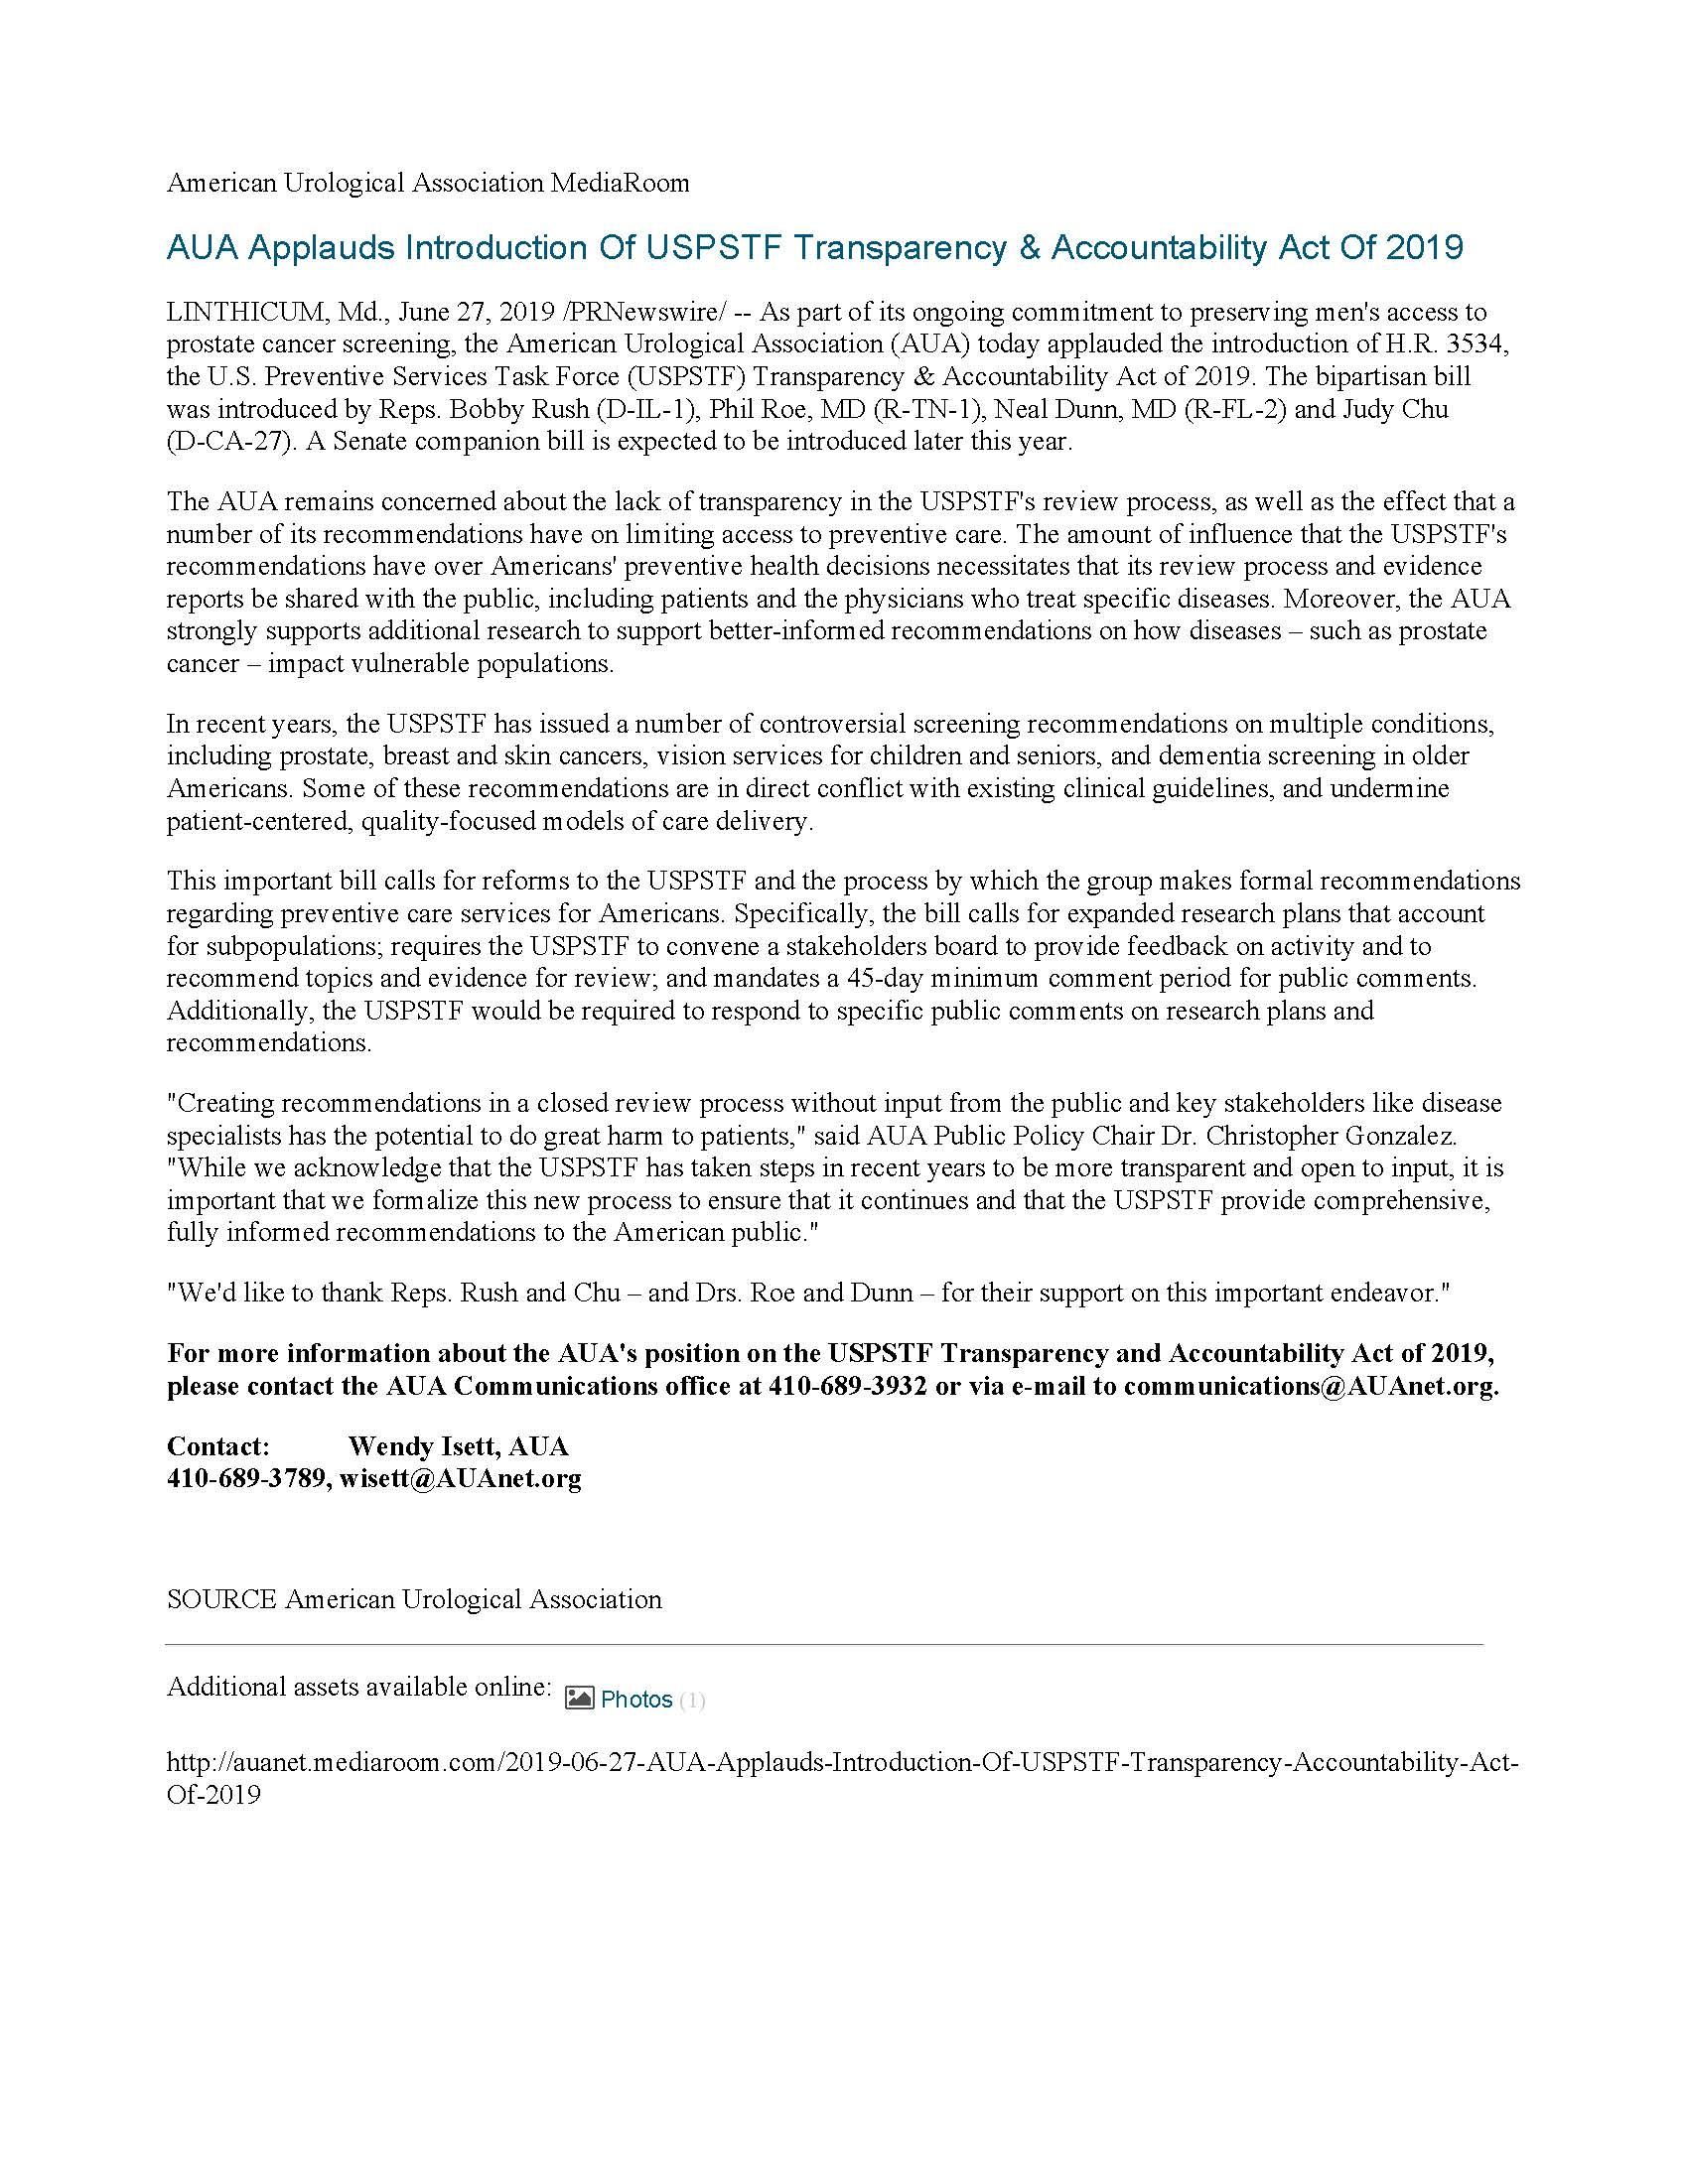 pdf of aua press release AUA Applauds Introduction Of USPSTF Transparency & Accountability Act Of 2019